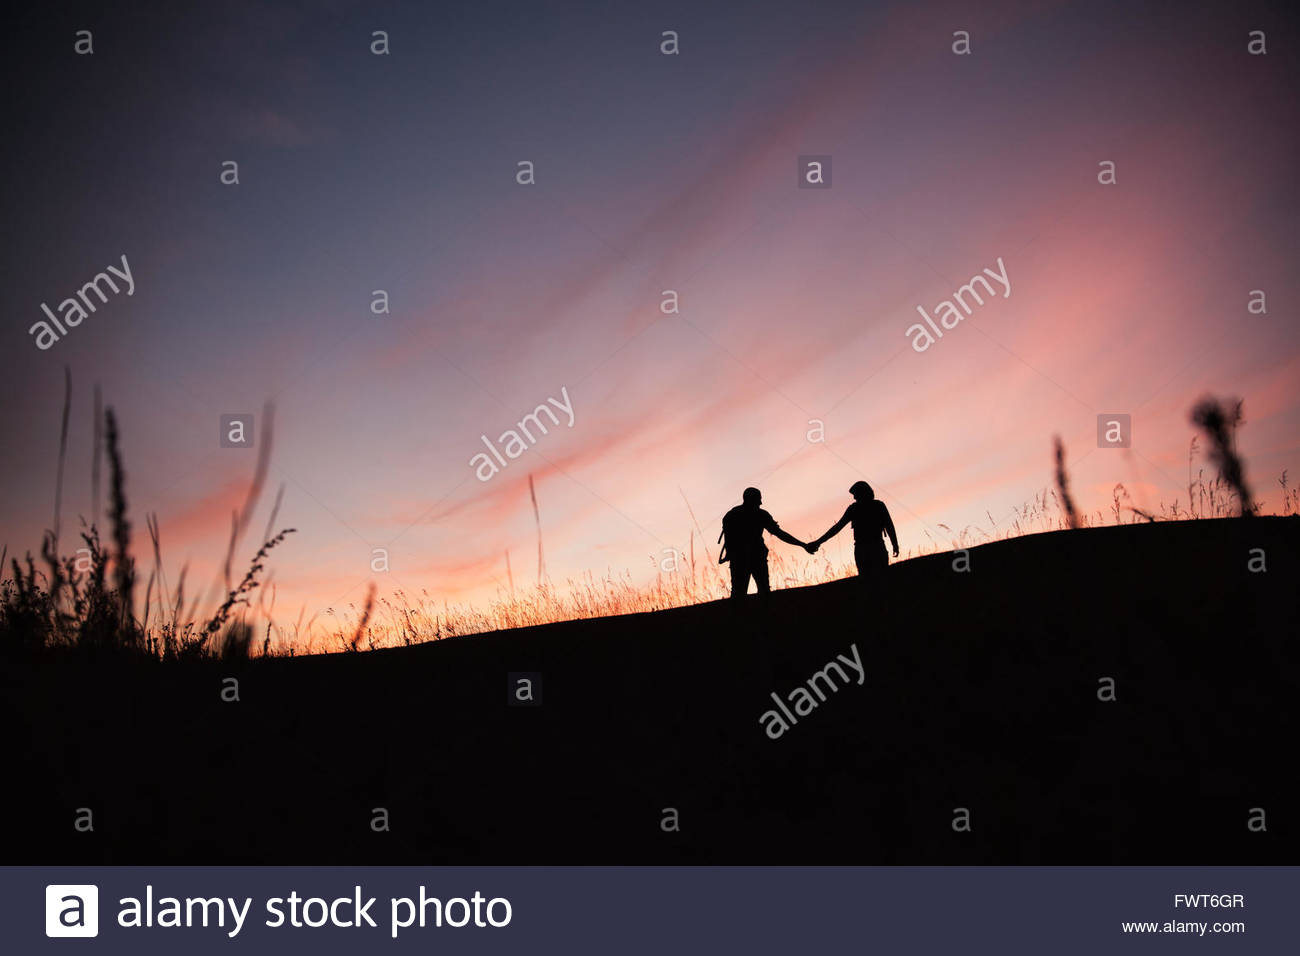 Silhouette of couple holding hands outdoors. - Stock Image